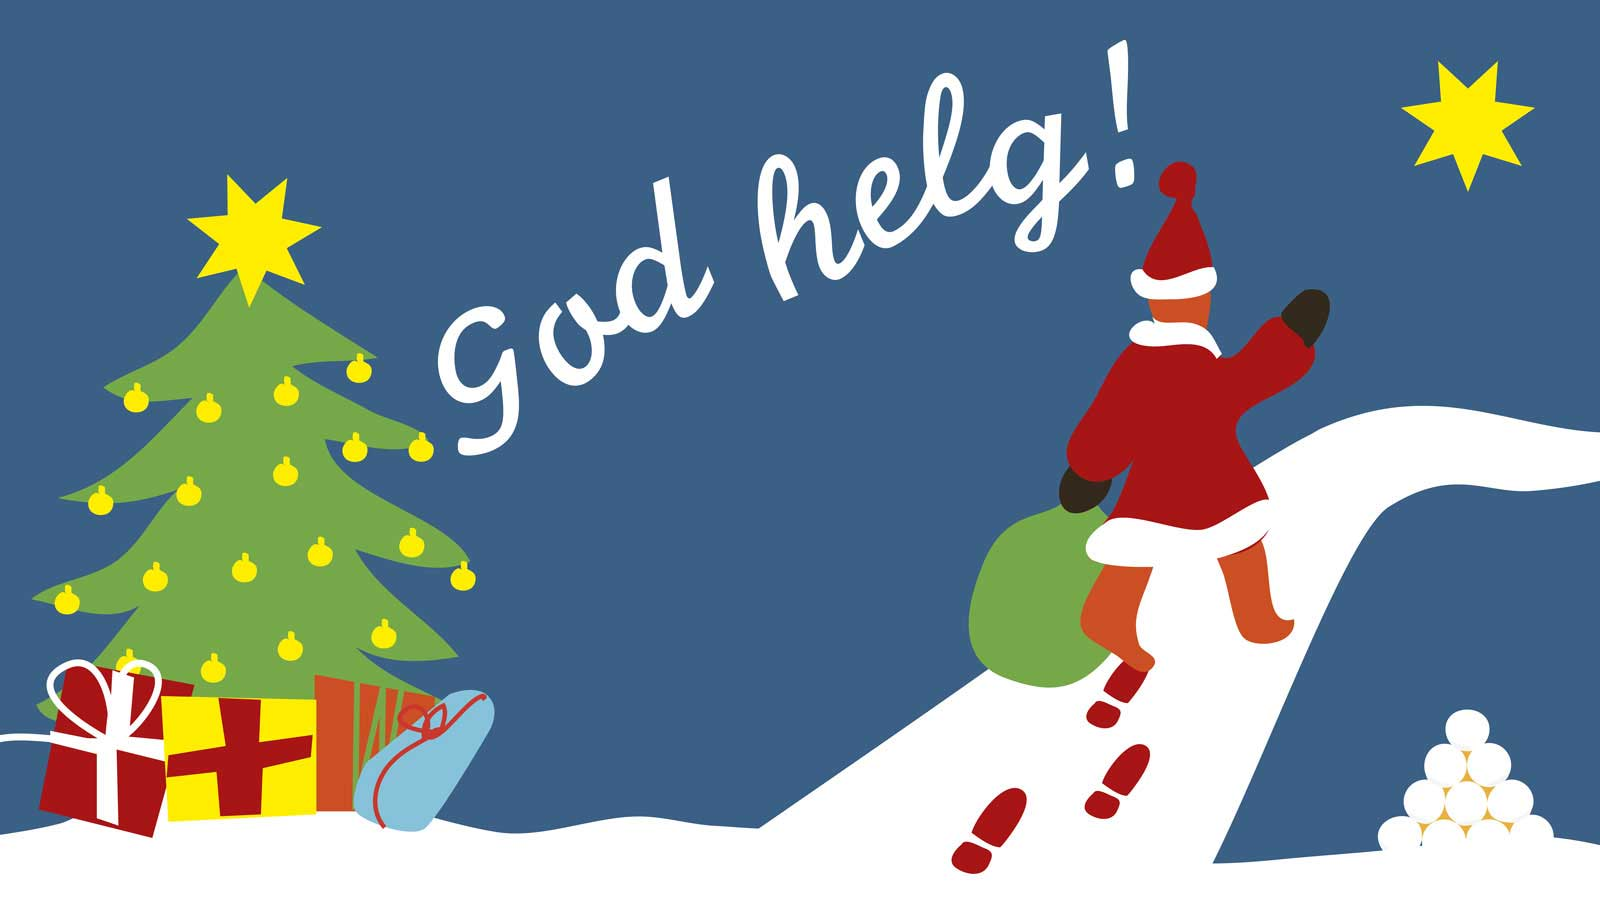 God helg! Illustration: Staffanstorps kommun